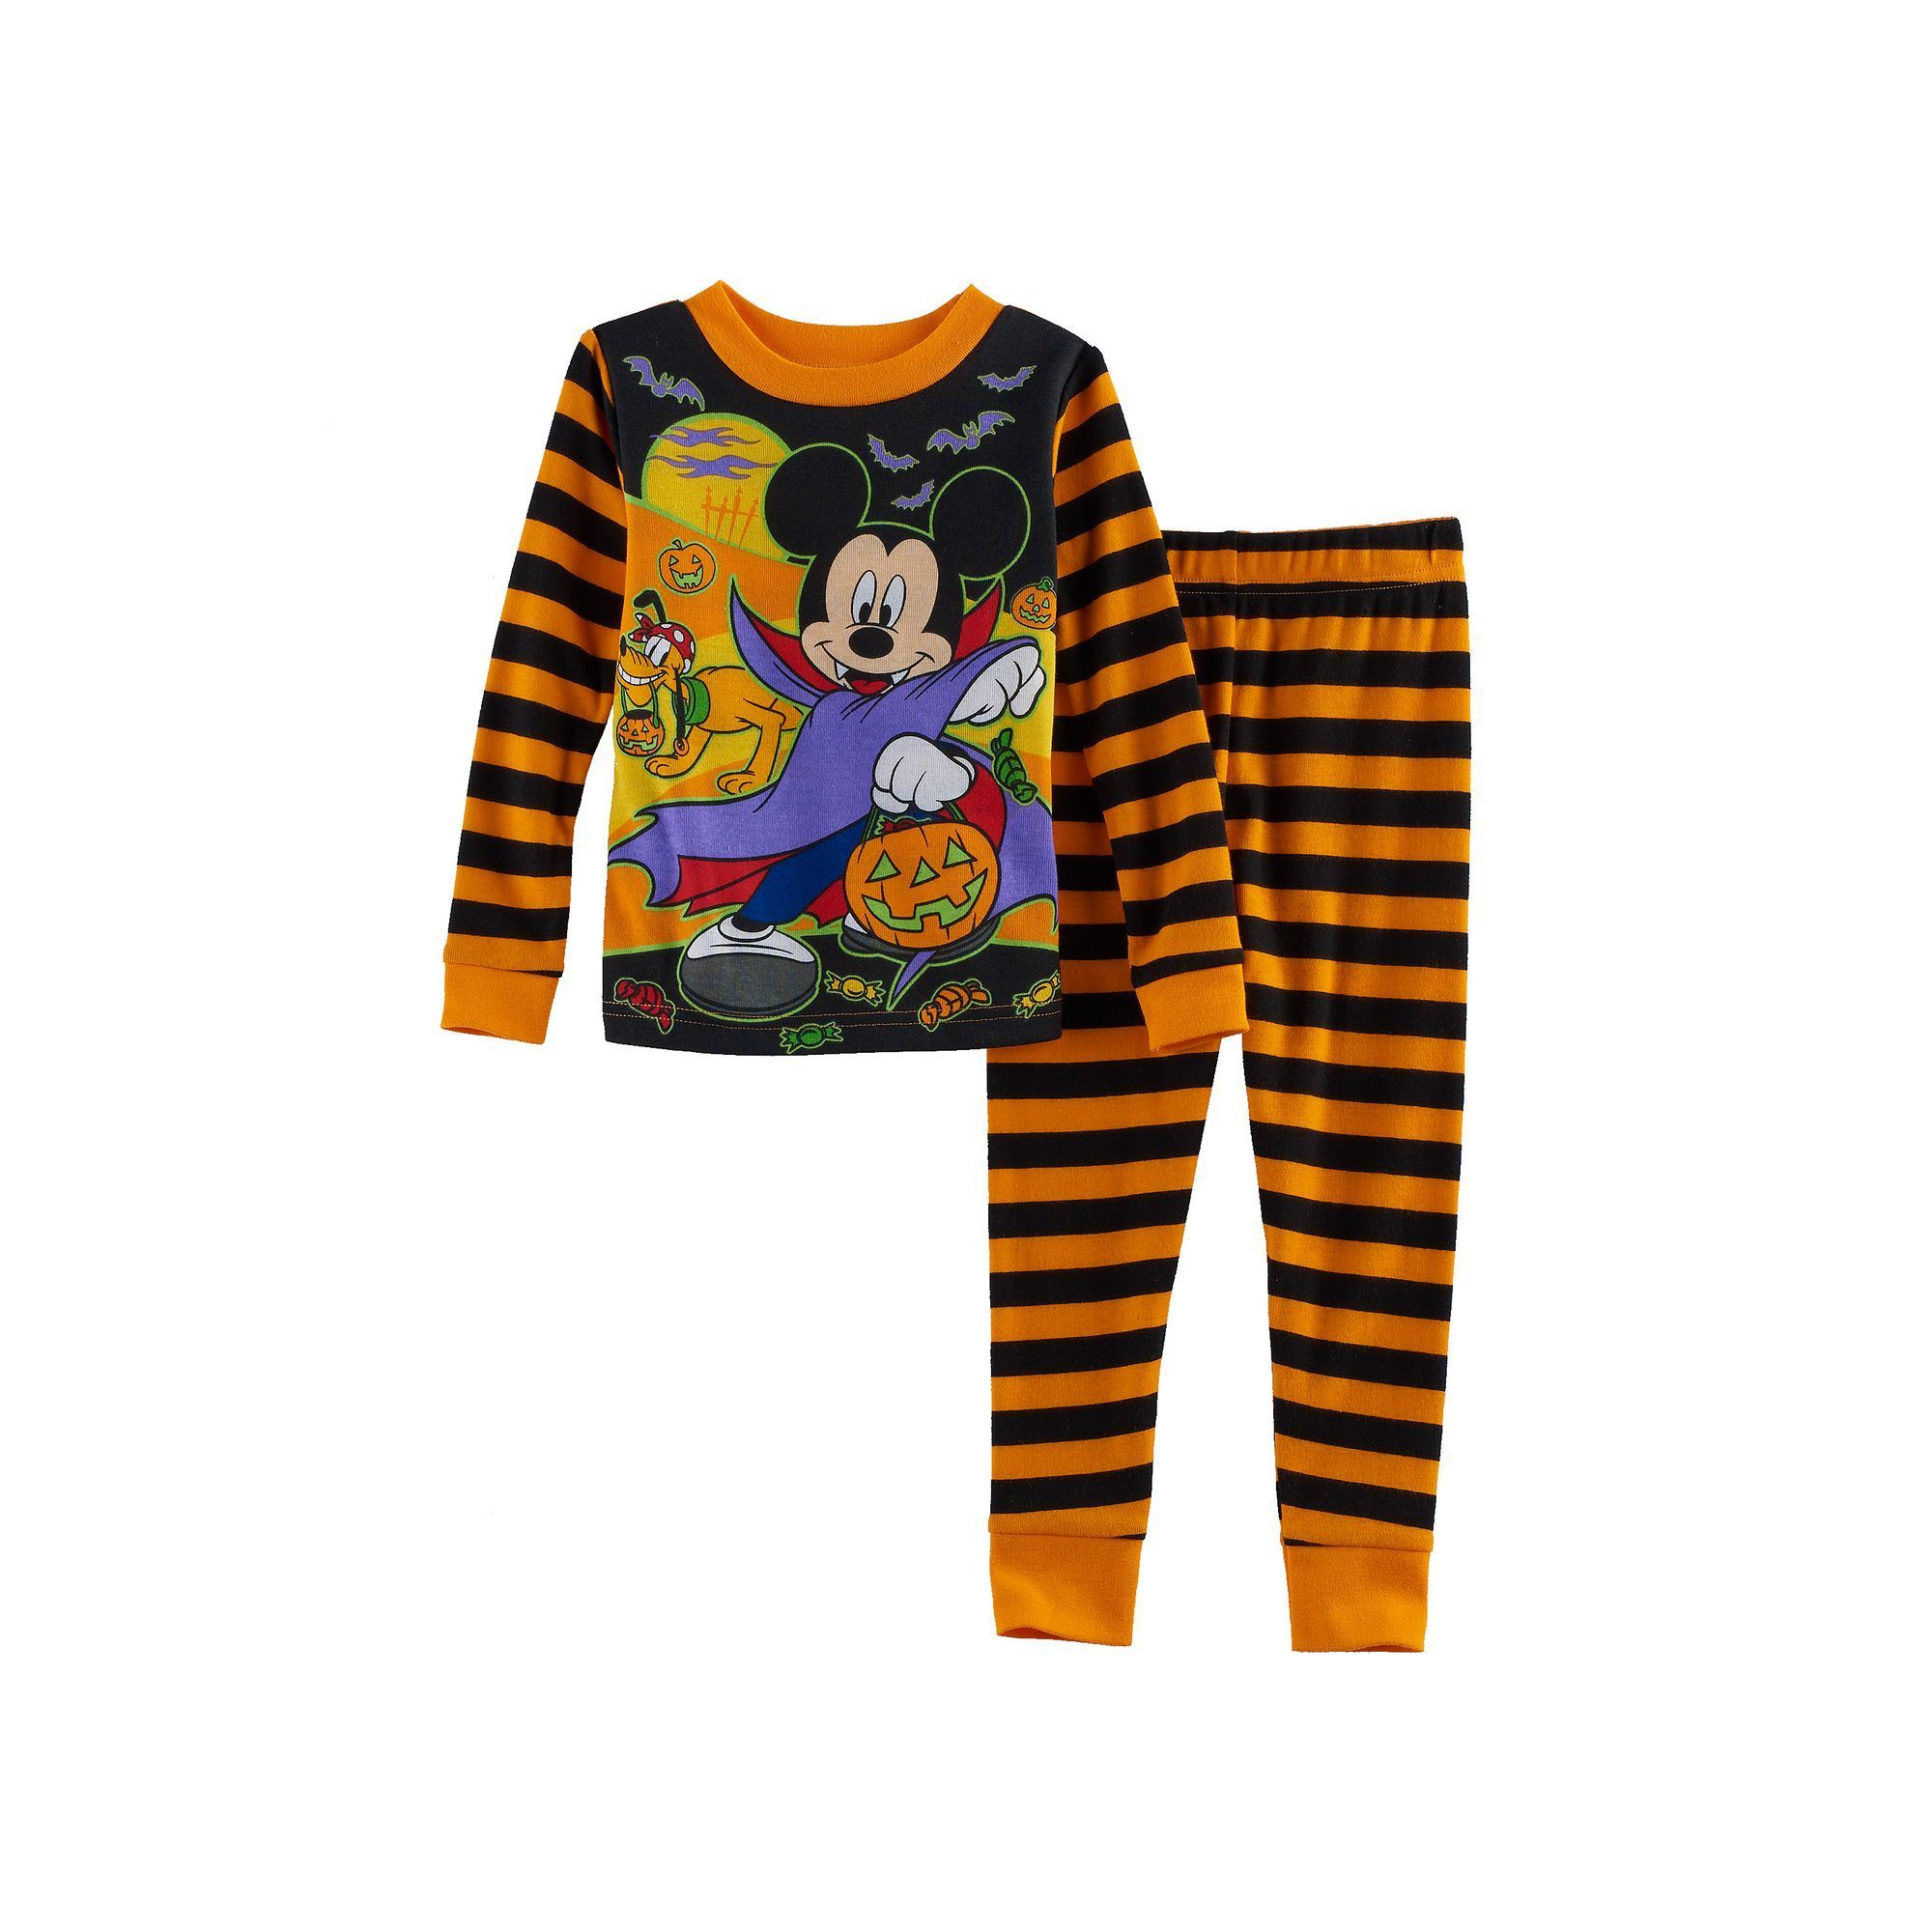 80a23d622fe45 Disney's Mickey Mouse Toddler Boy Striped Halloween Glow in the Dark ...